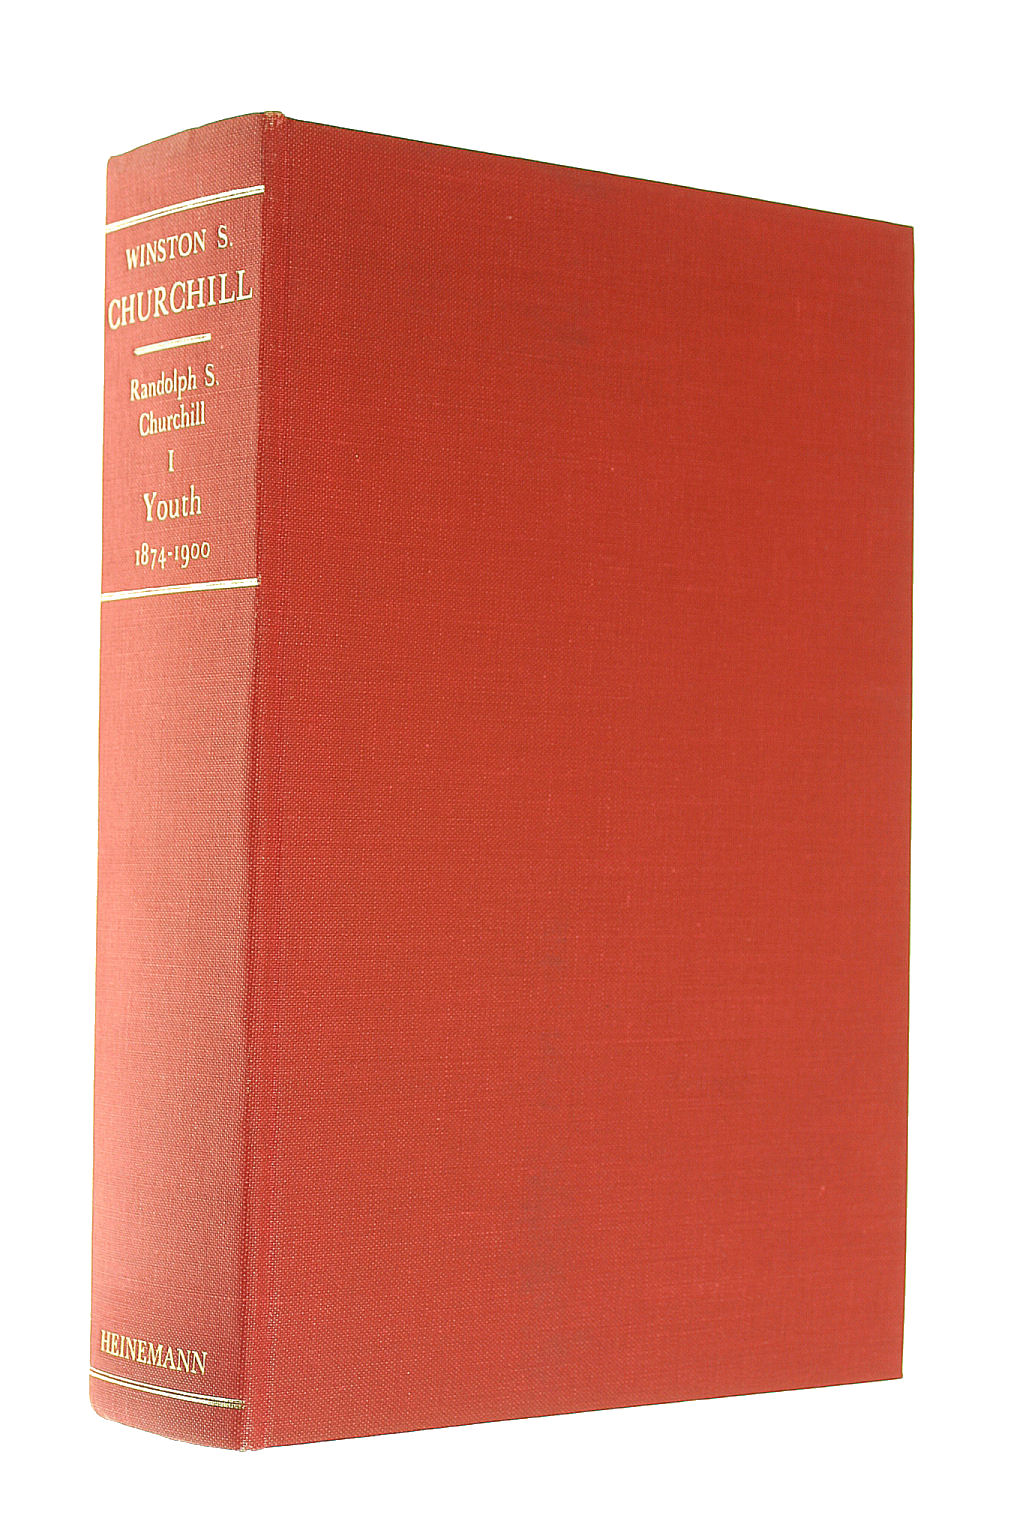 Image for Winston S Churchill, Vol. 1: Youth, 1874-1900